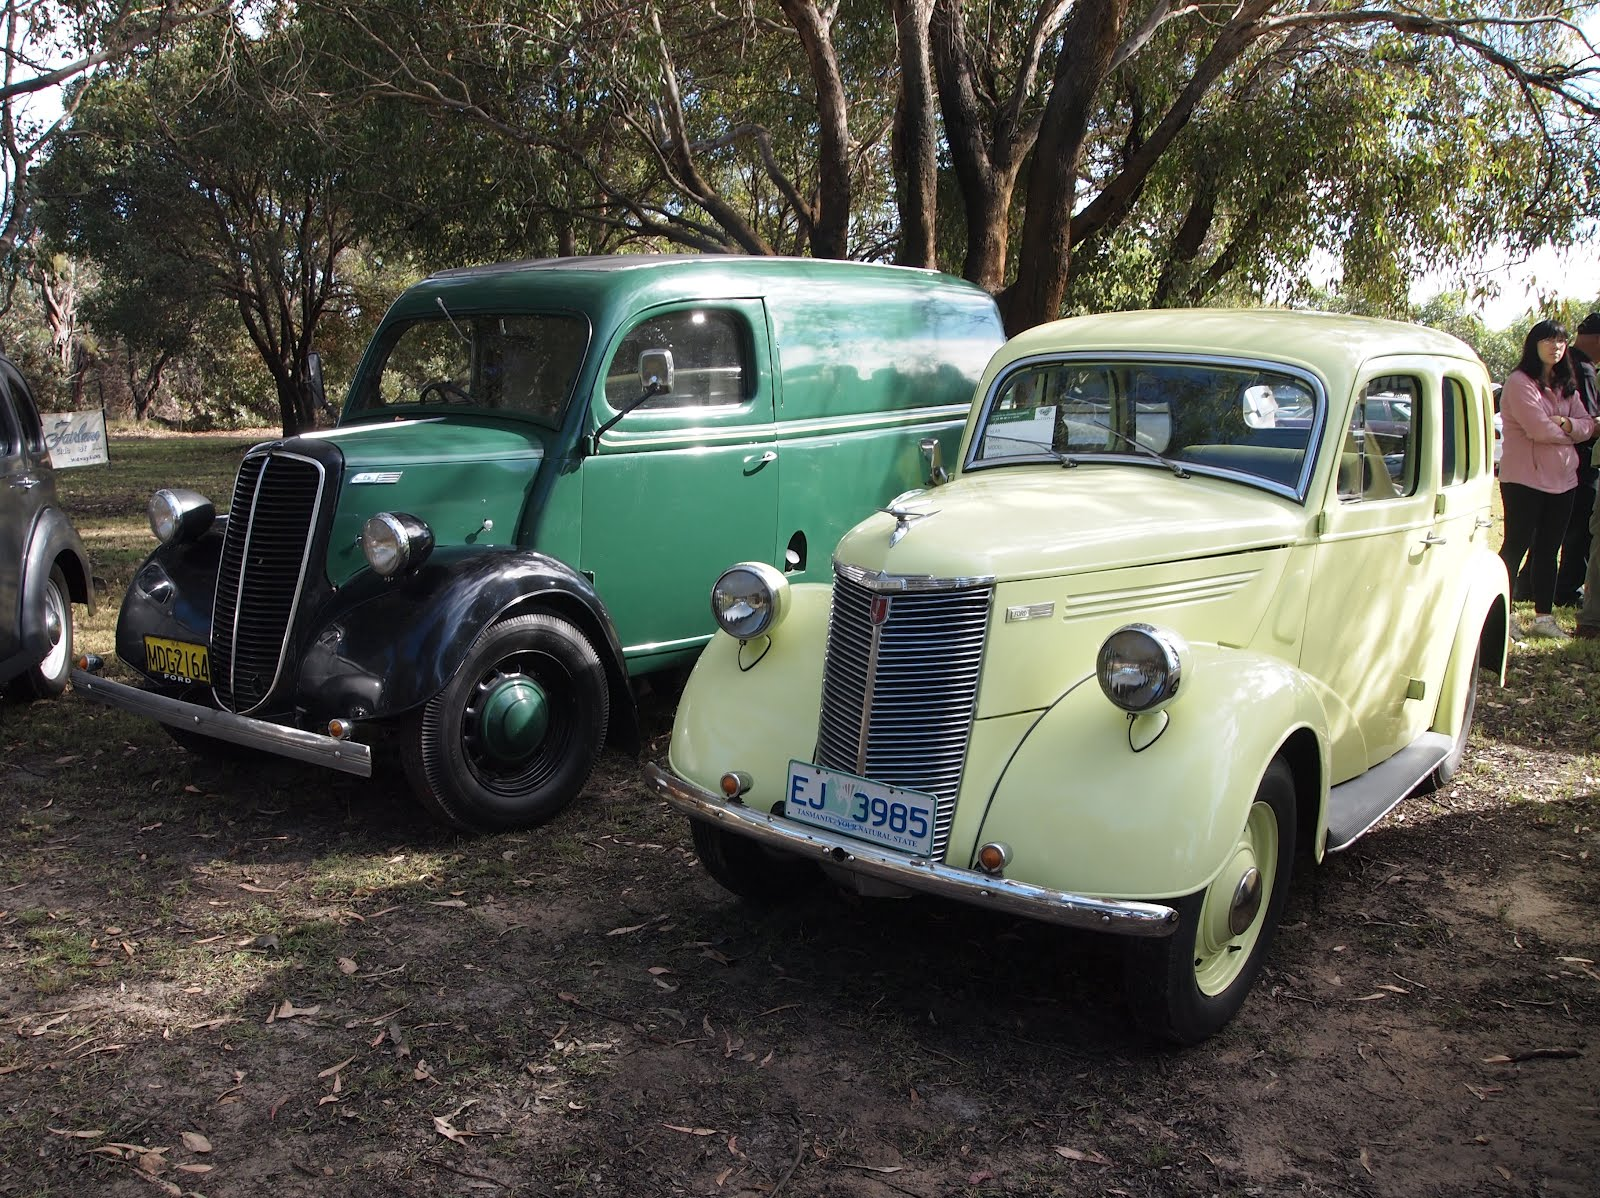 Amazing Classic Cars For Sale In Perth Crest - Classic Cars Ideas ...